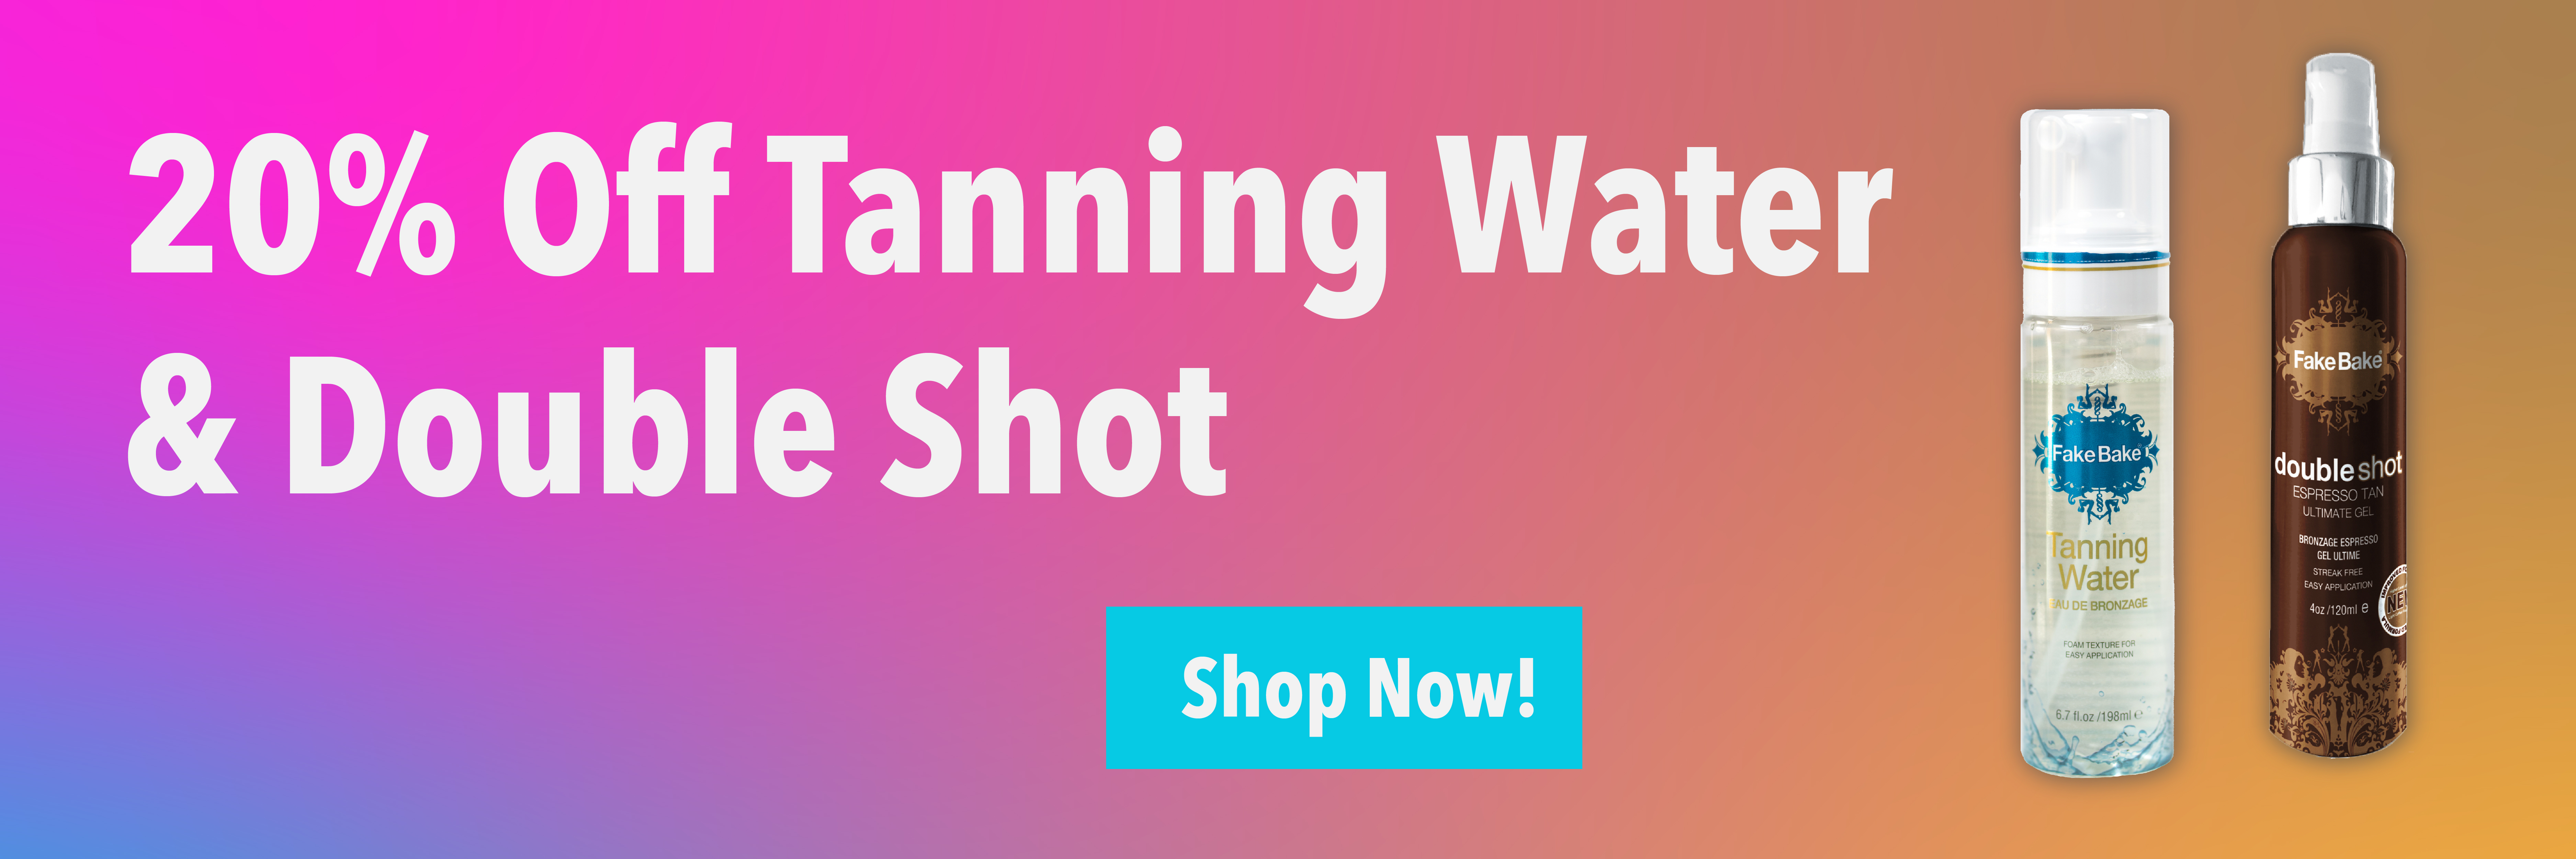 20% Off Tanning Water & Double Shot